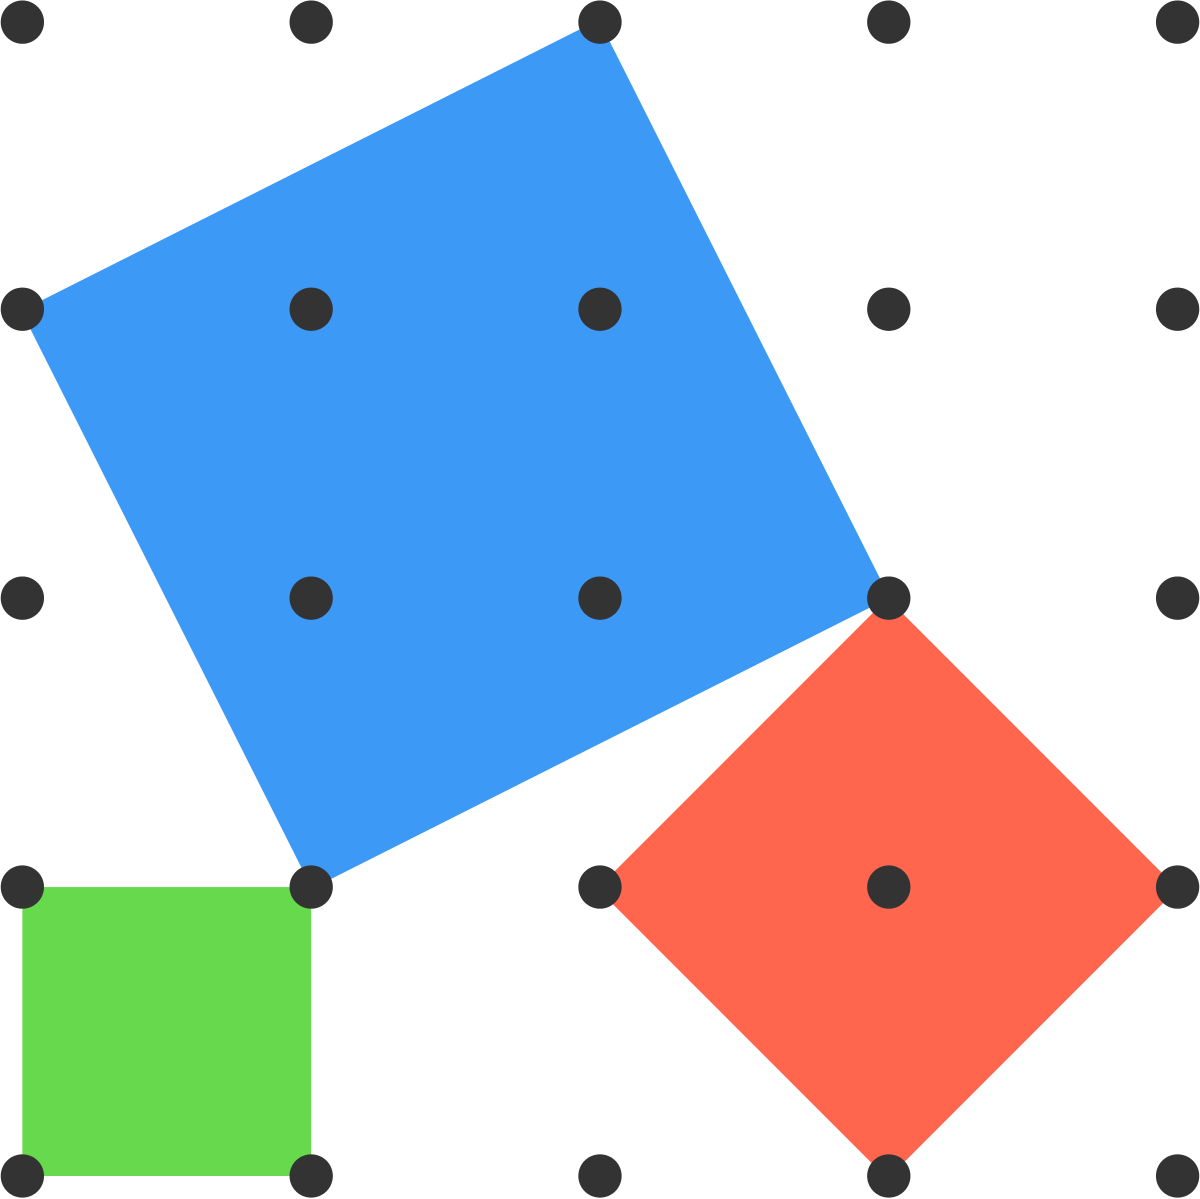 Three possible squares are shown.